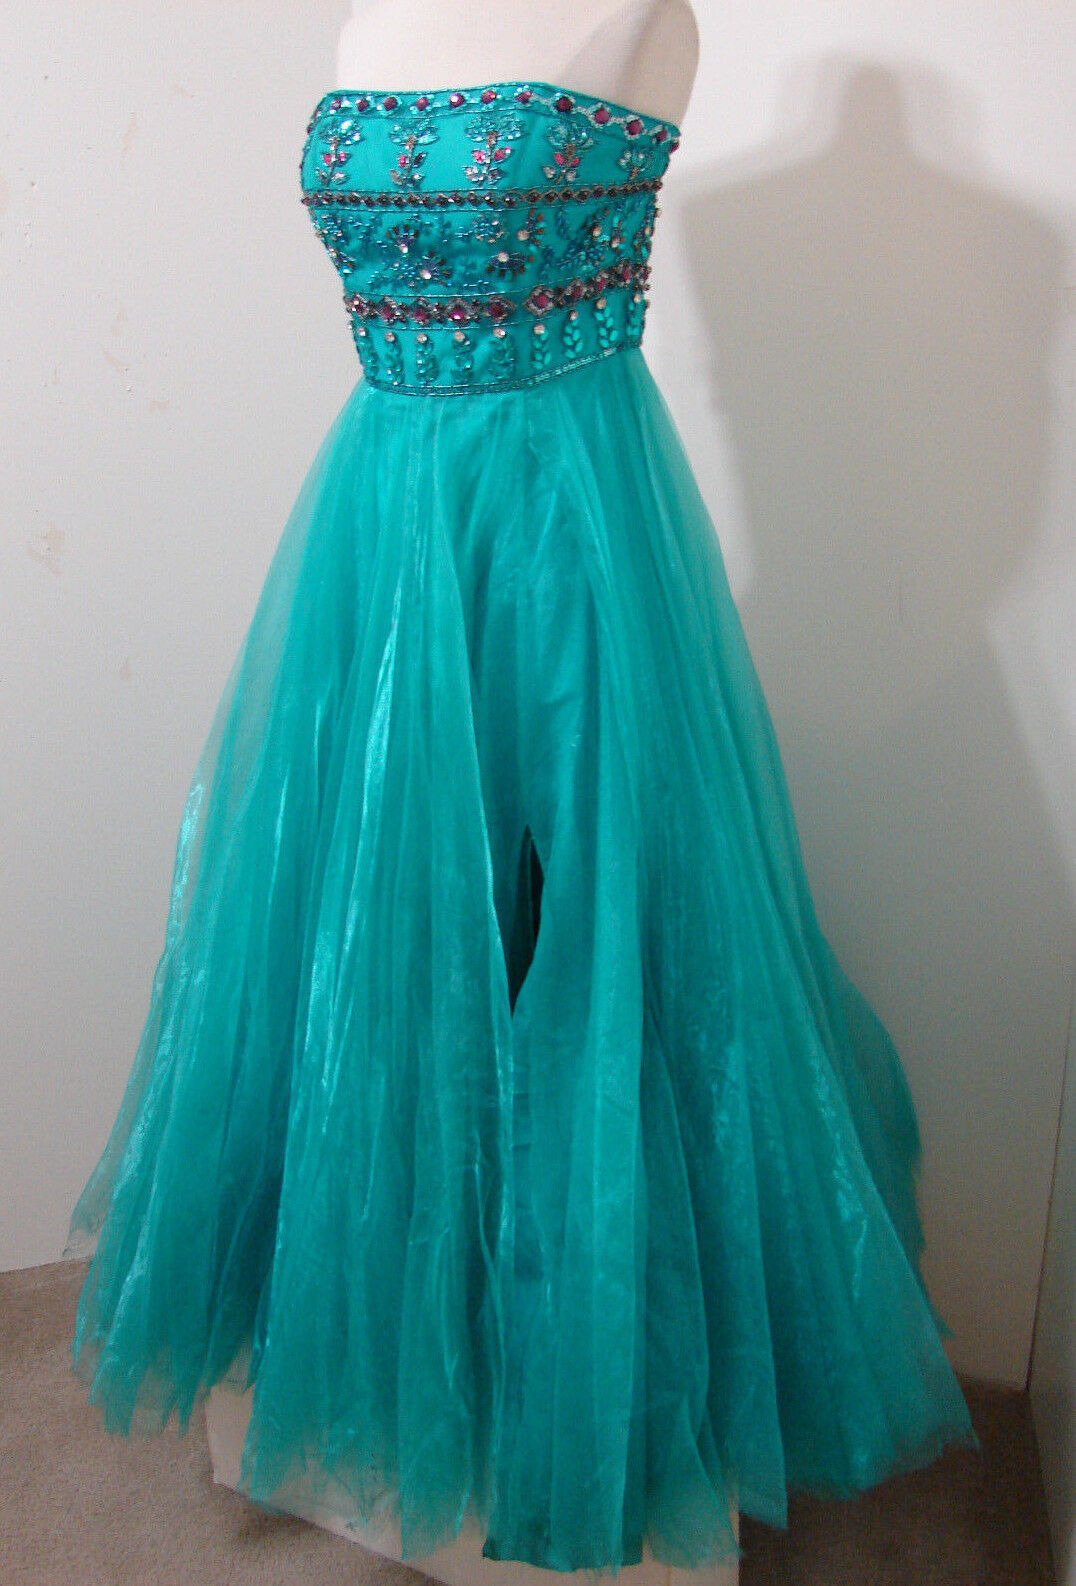 3cf1804f57f7 HILL Early Jeweled Cinderella Strapless Gown STUDIO USED 6 SHERRI Turquoise  nuyyyj4011-Dresses